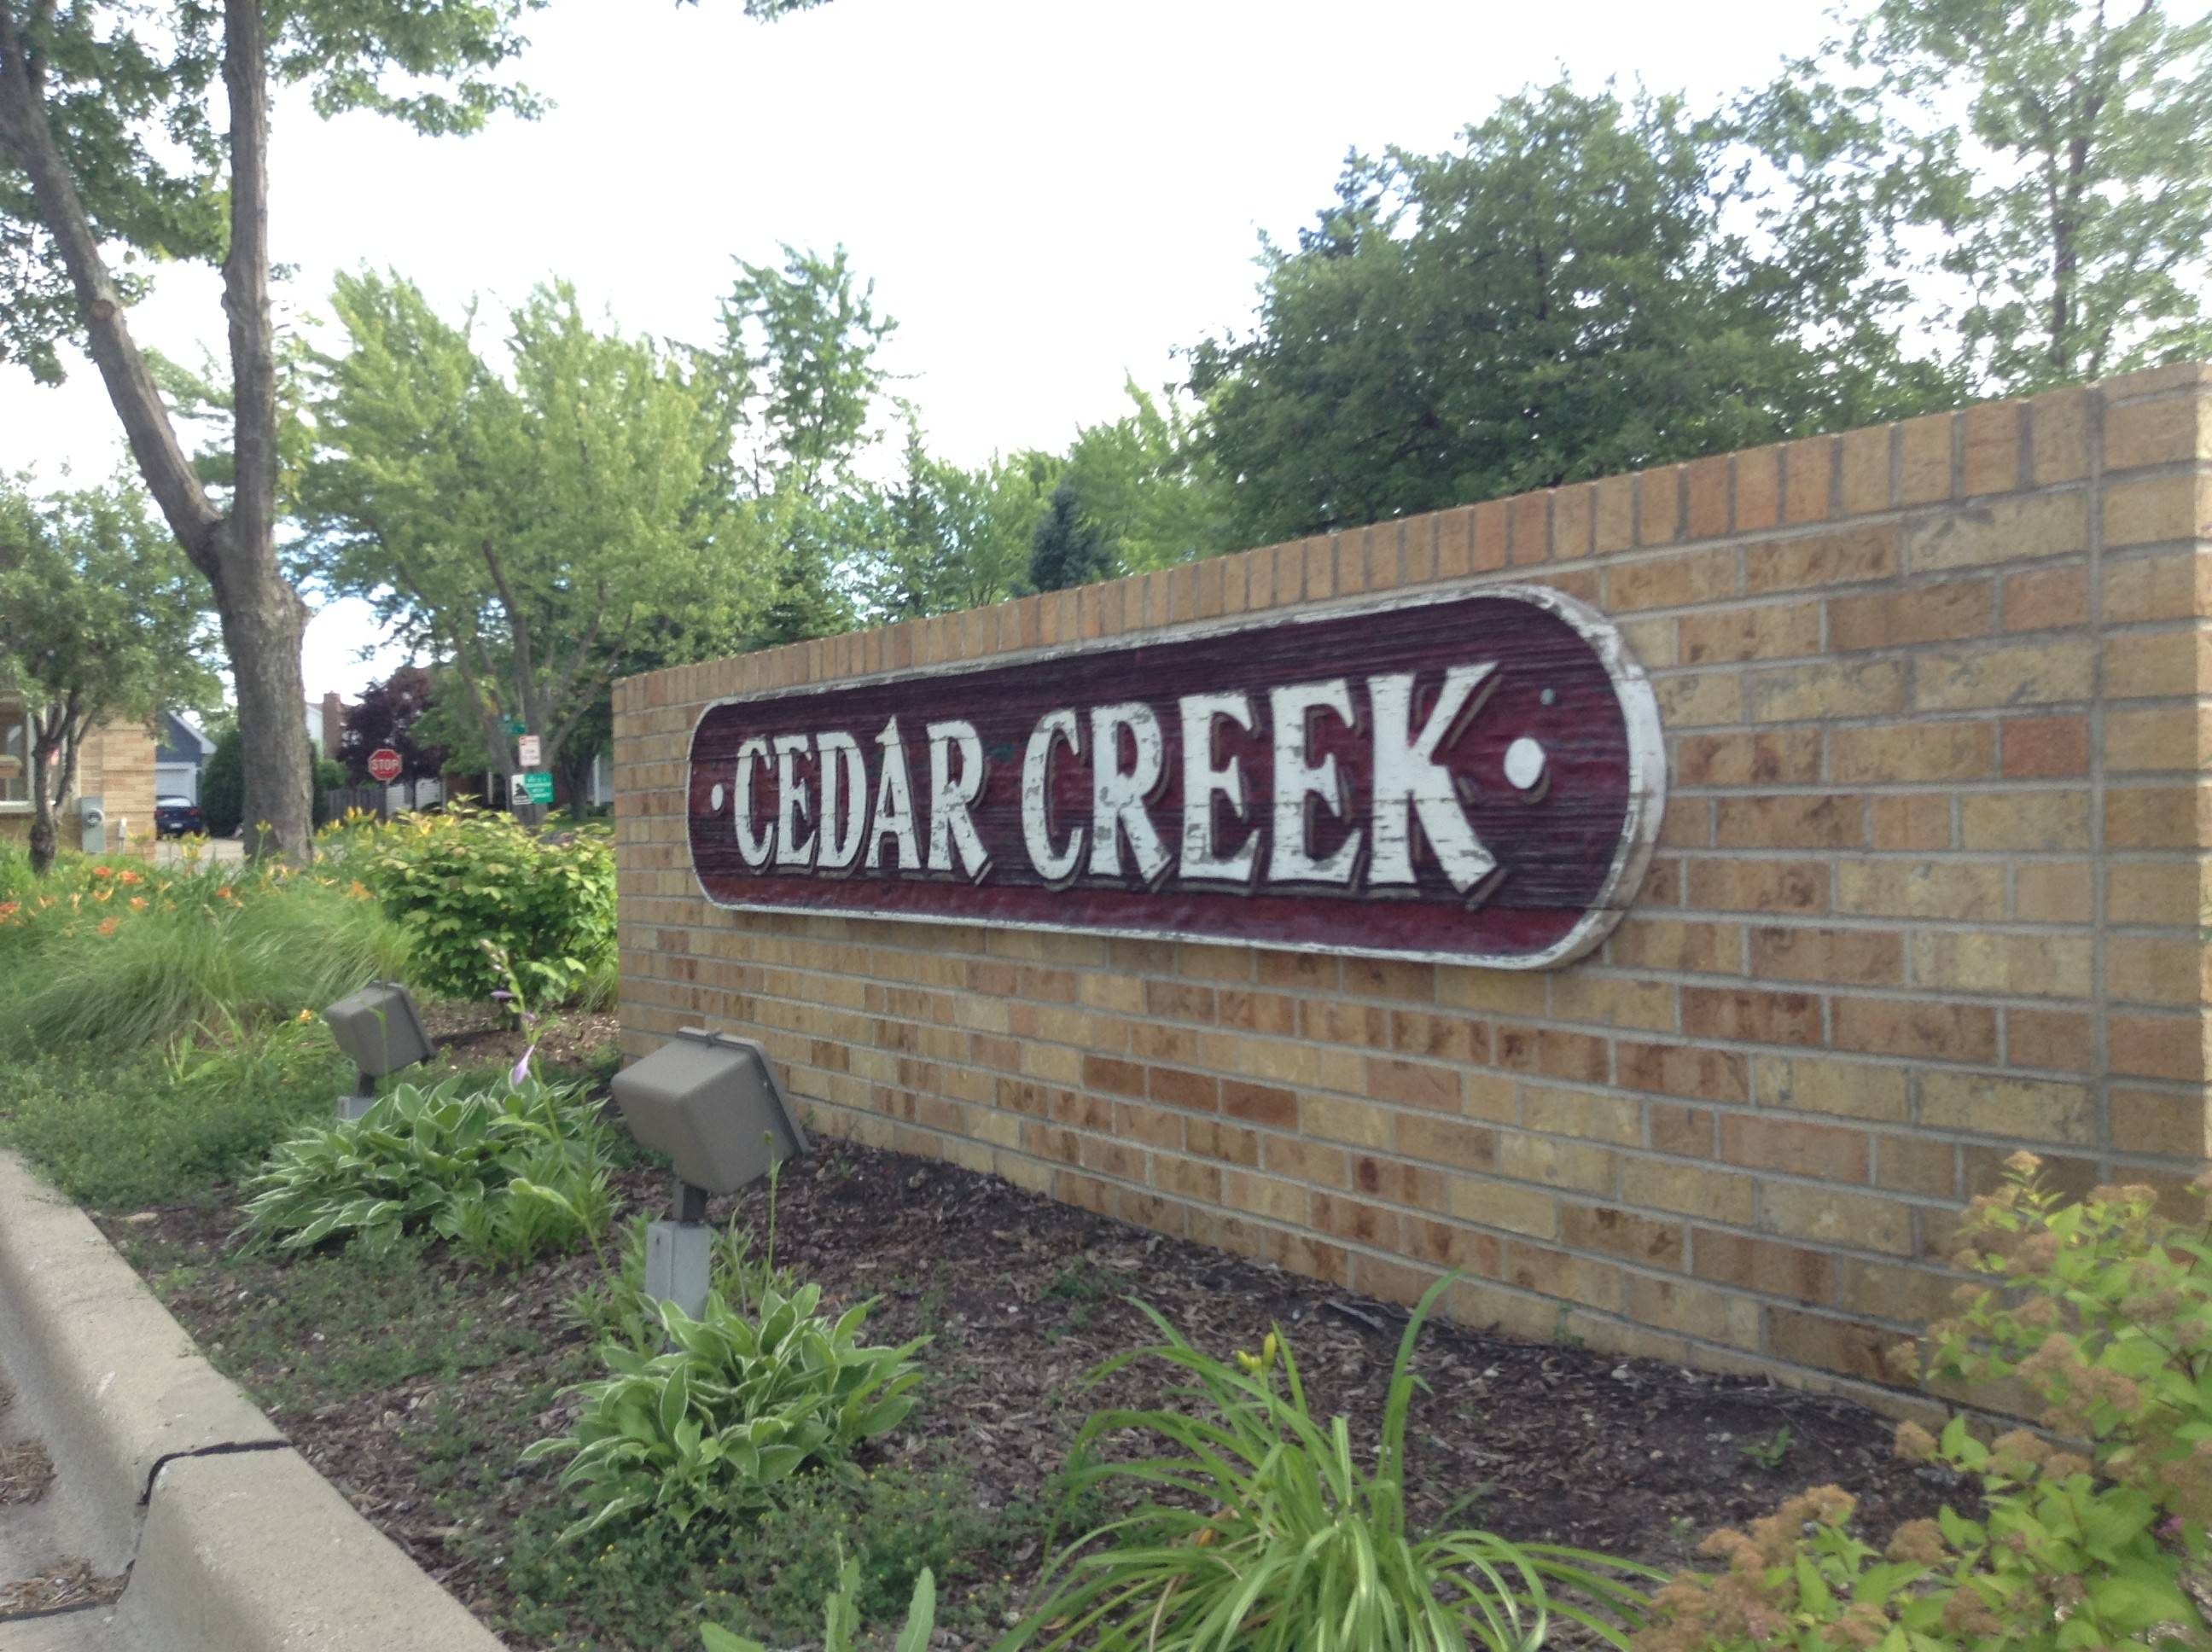 Vernon Hills-based Manhard Consulting Inc. will handle engineering design work for a proposal to increase storage capacity of a detention pond that collects stormwater for flood-prone Cedar Creek subdivision in Lake Zurich.